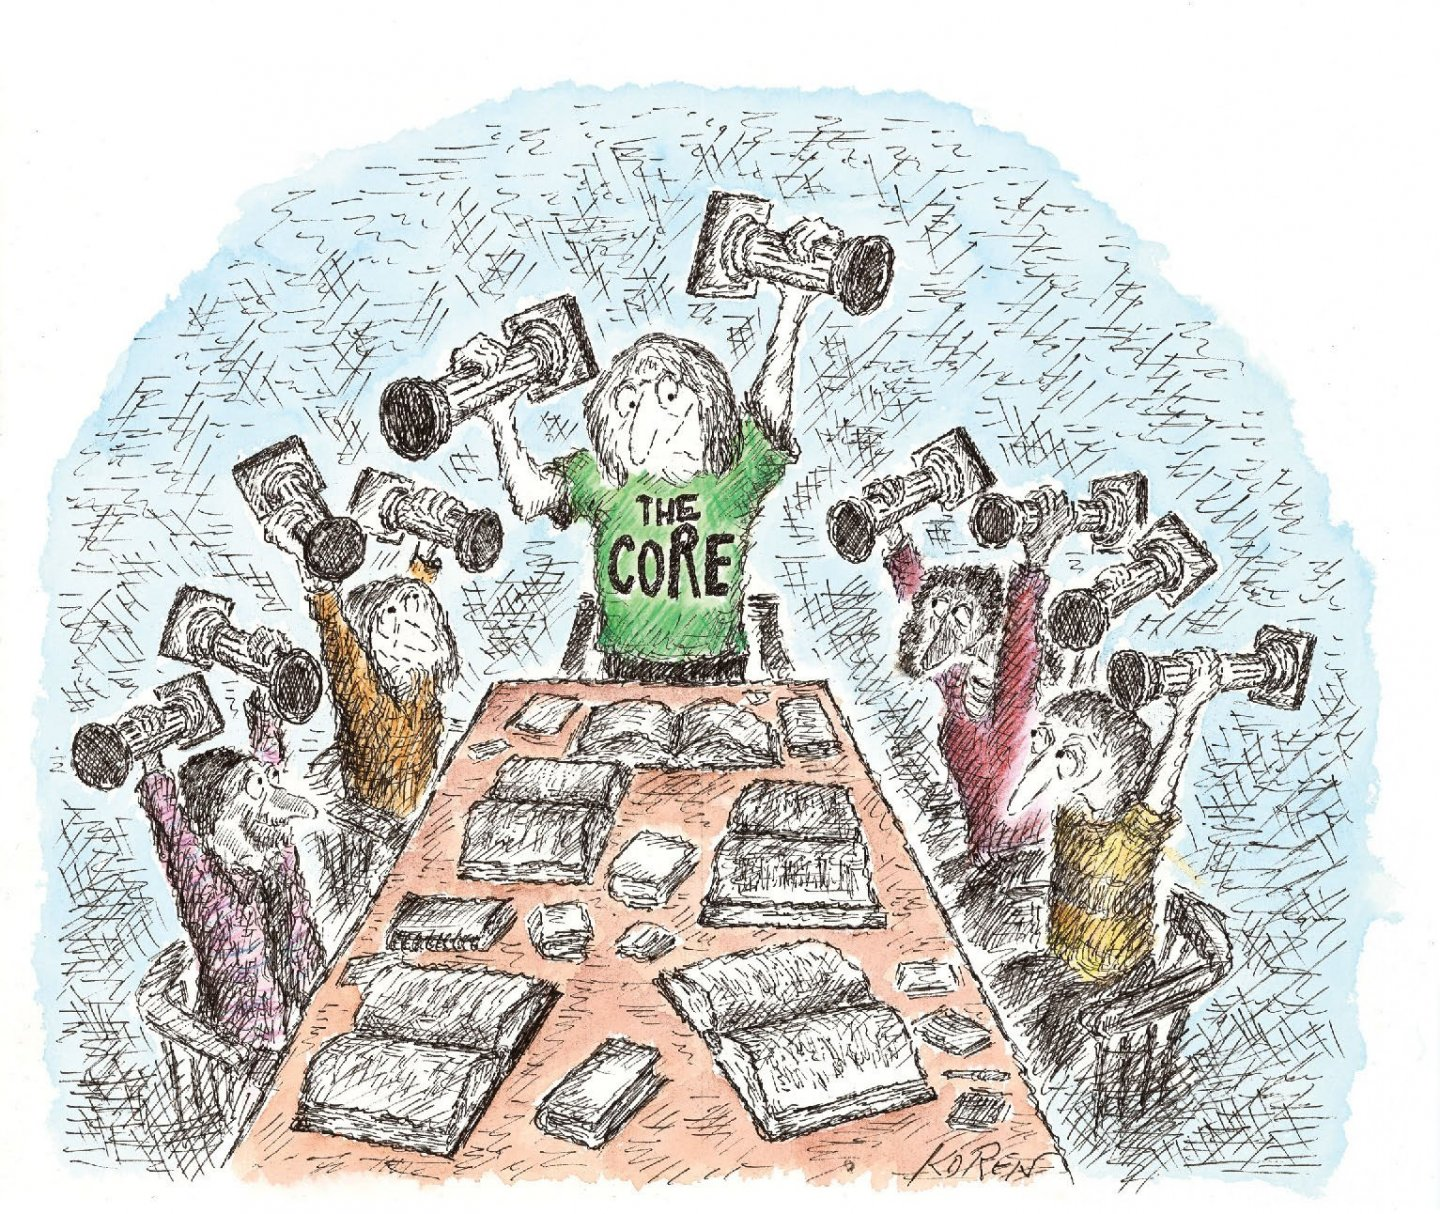 Cartoon drawing of several persons seated, and one person standing, at a a table with open books. All are holding miniature pillars overhead, and the person standing has the words 'The Core' written on the individual's shirt.